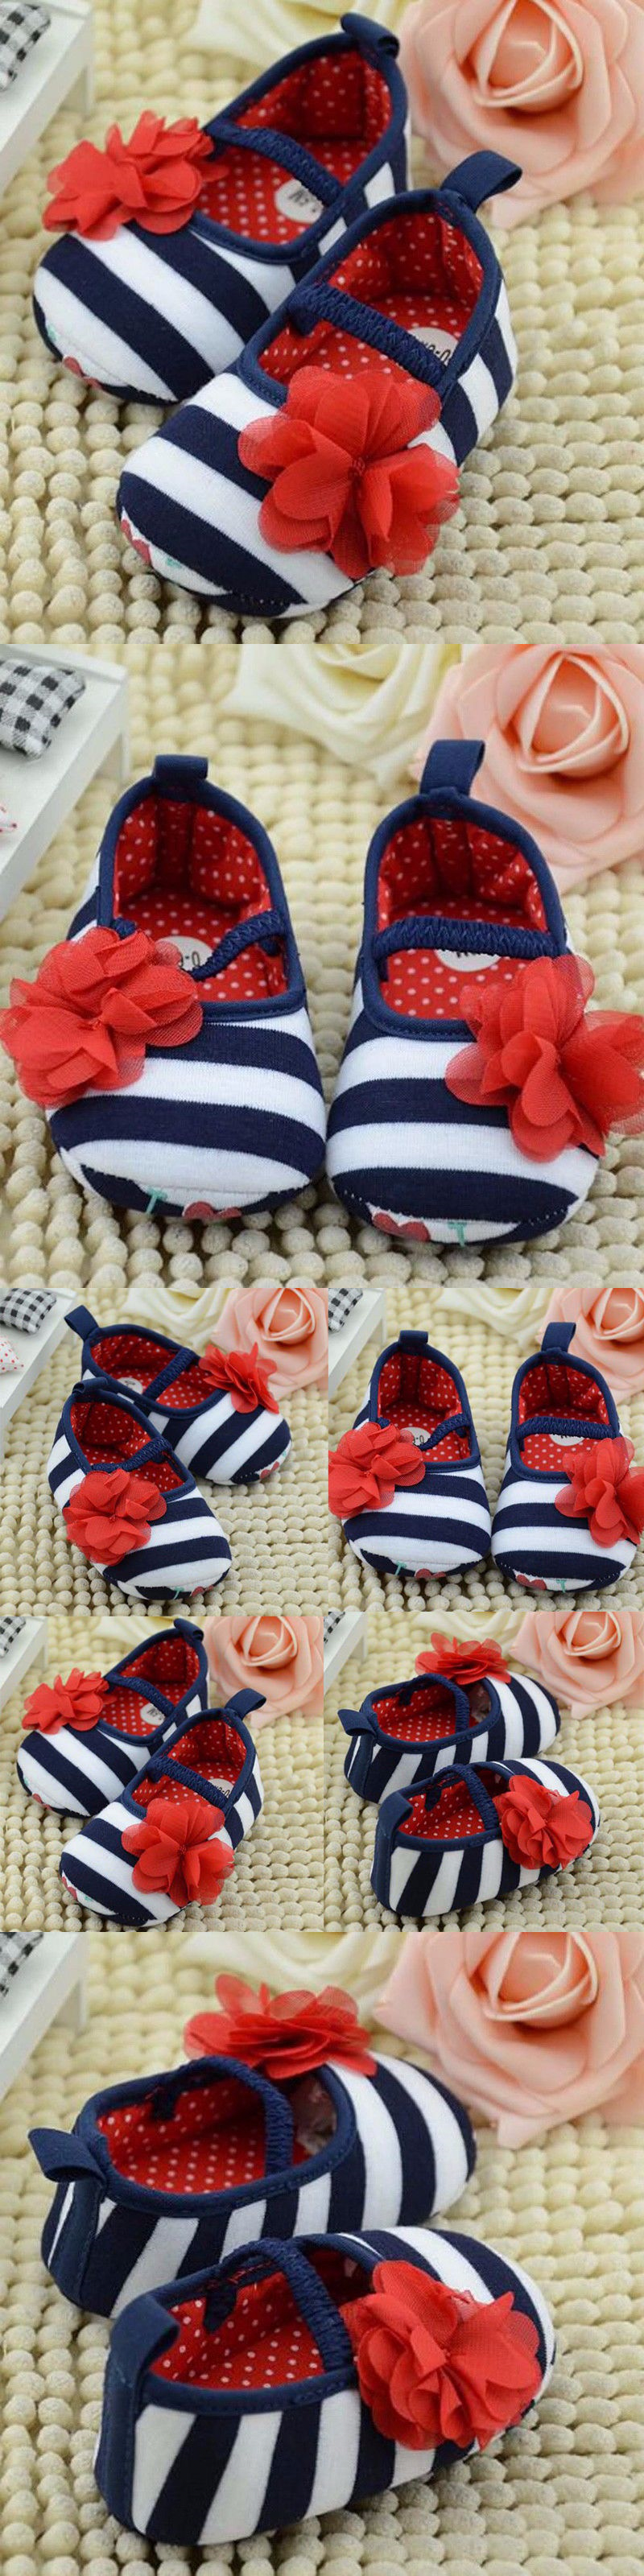 Baby Girls Shoes: Toddler Infant Newborn Baby Girls Kid Soft Sole Flower Prewalker Crib Shoes Bao BUY IT NOW ONLY: $4.99